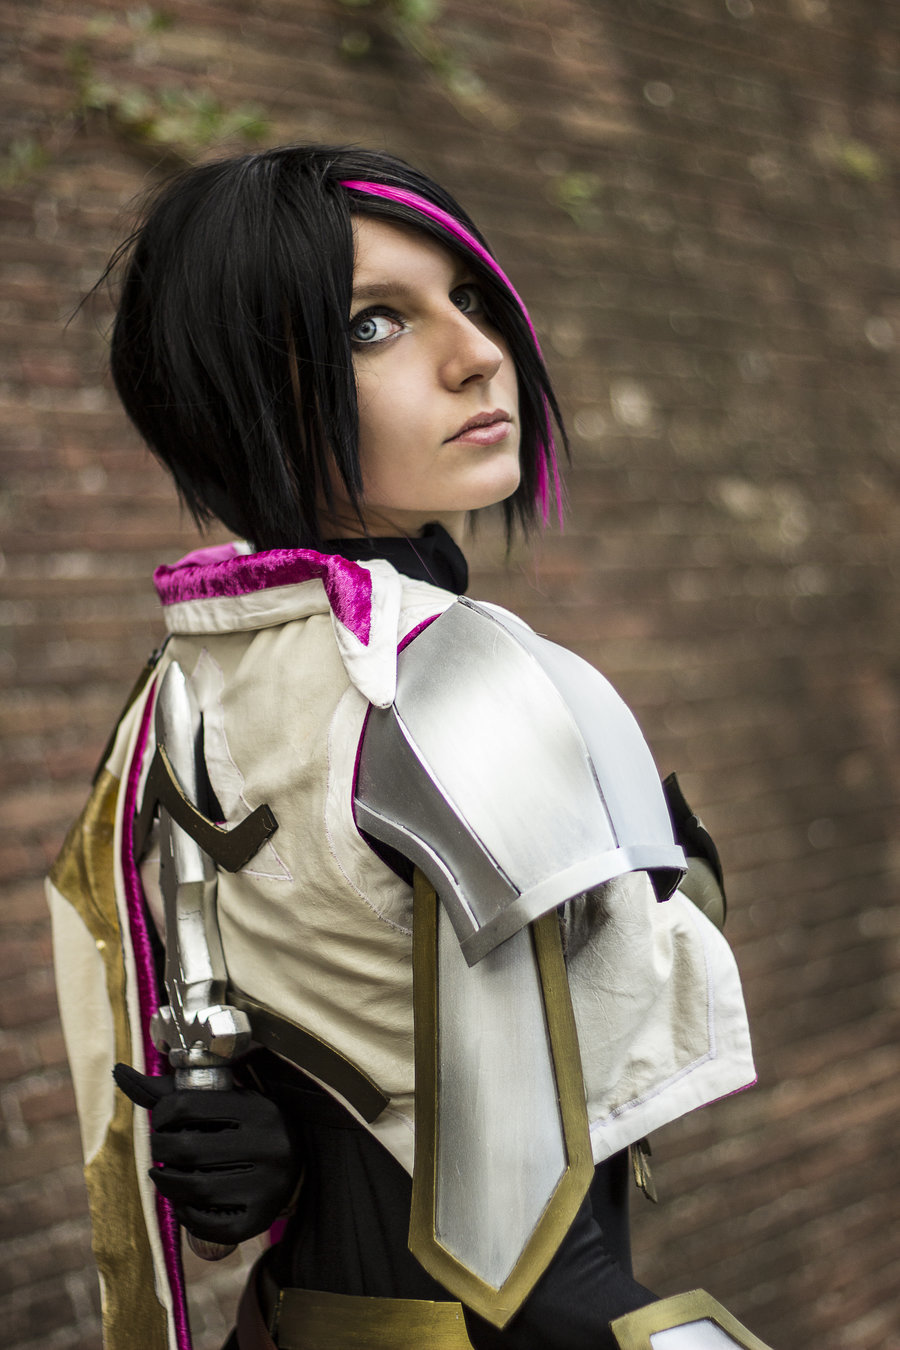 fiora2 - ultimate league of legends cosplay collection